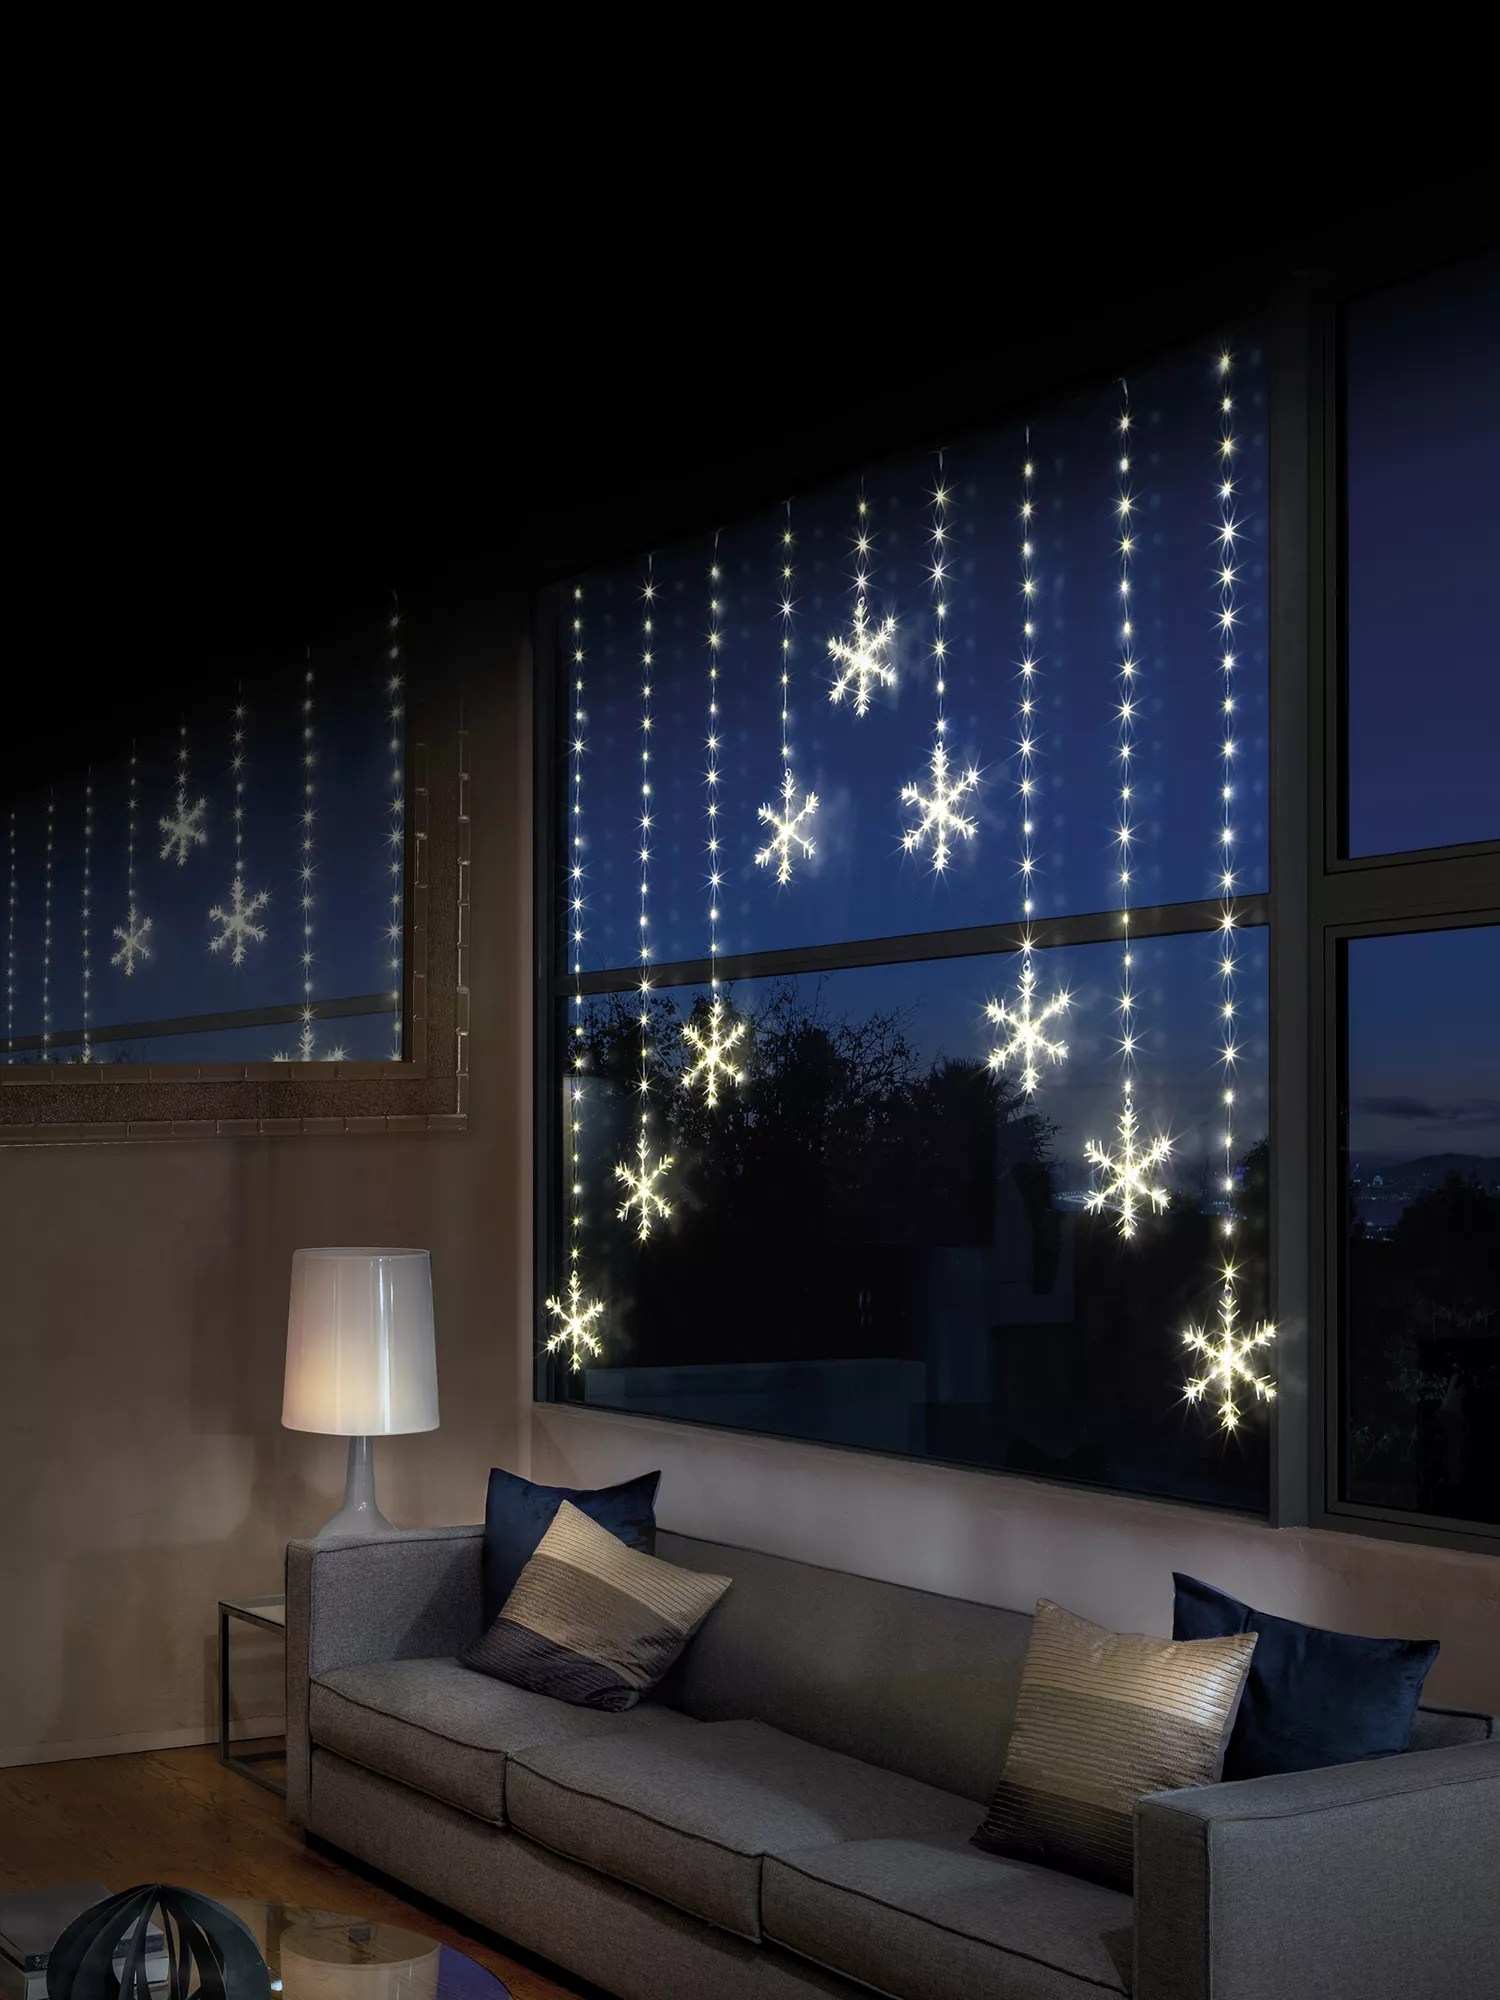 premier decorations 339 led snowflake pin wire window curtain lights l1 2m warm white